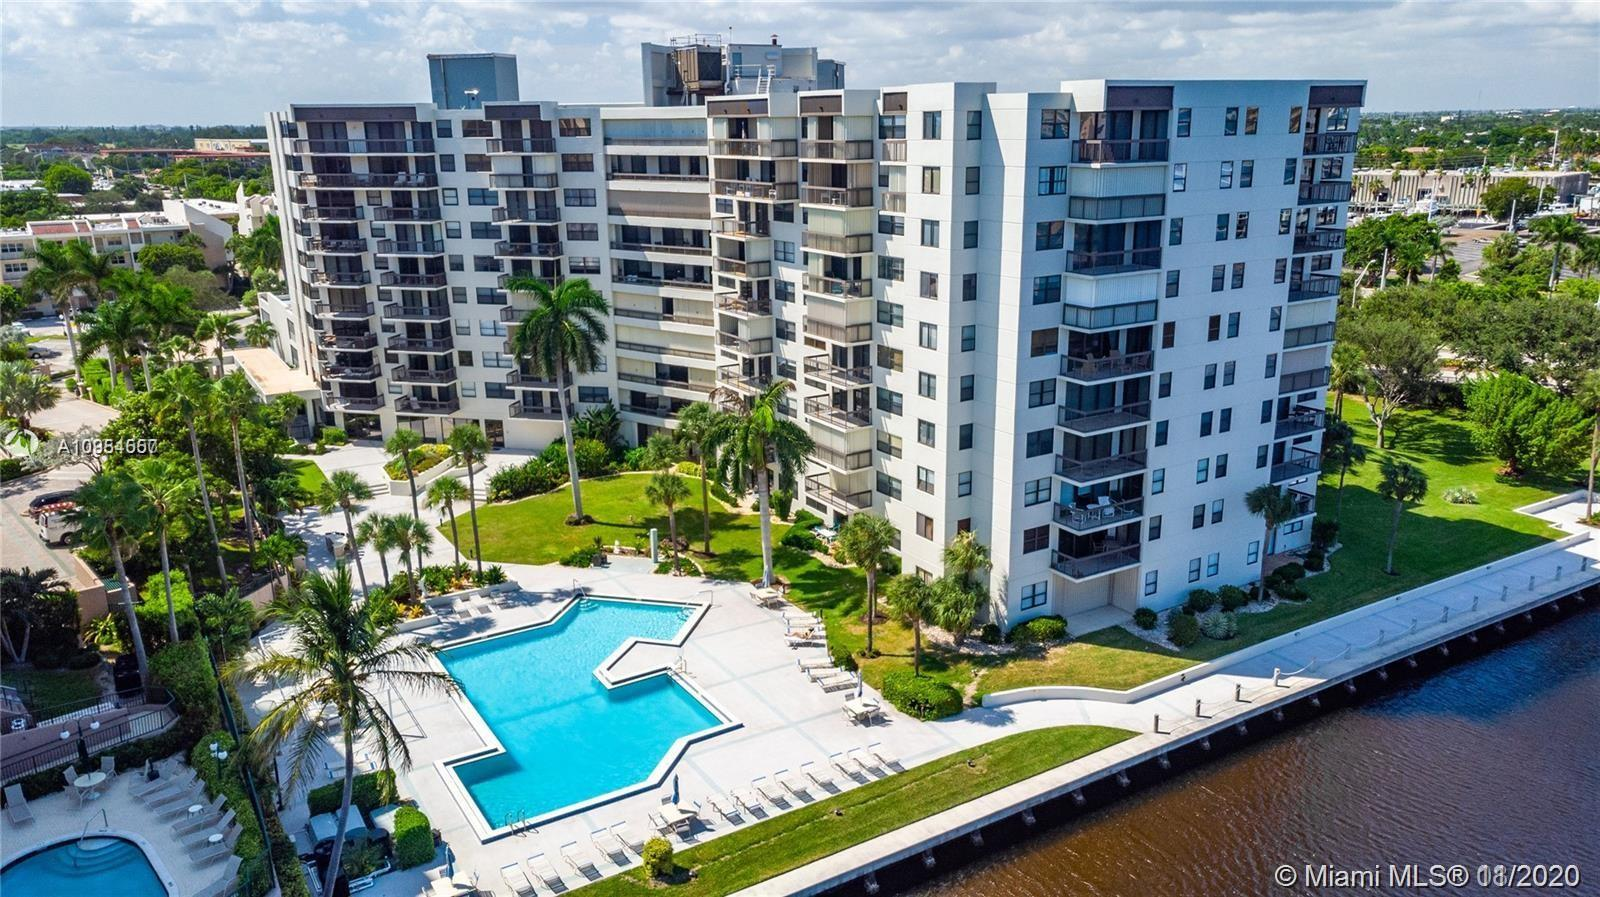 PRICED TO SELL! OCEAN AND INTRACOASTAL PARTIAL VIEWS! THIS LARGE UNIT (APPROX 1300- 1350 SQF) HAS A